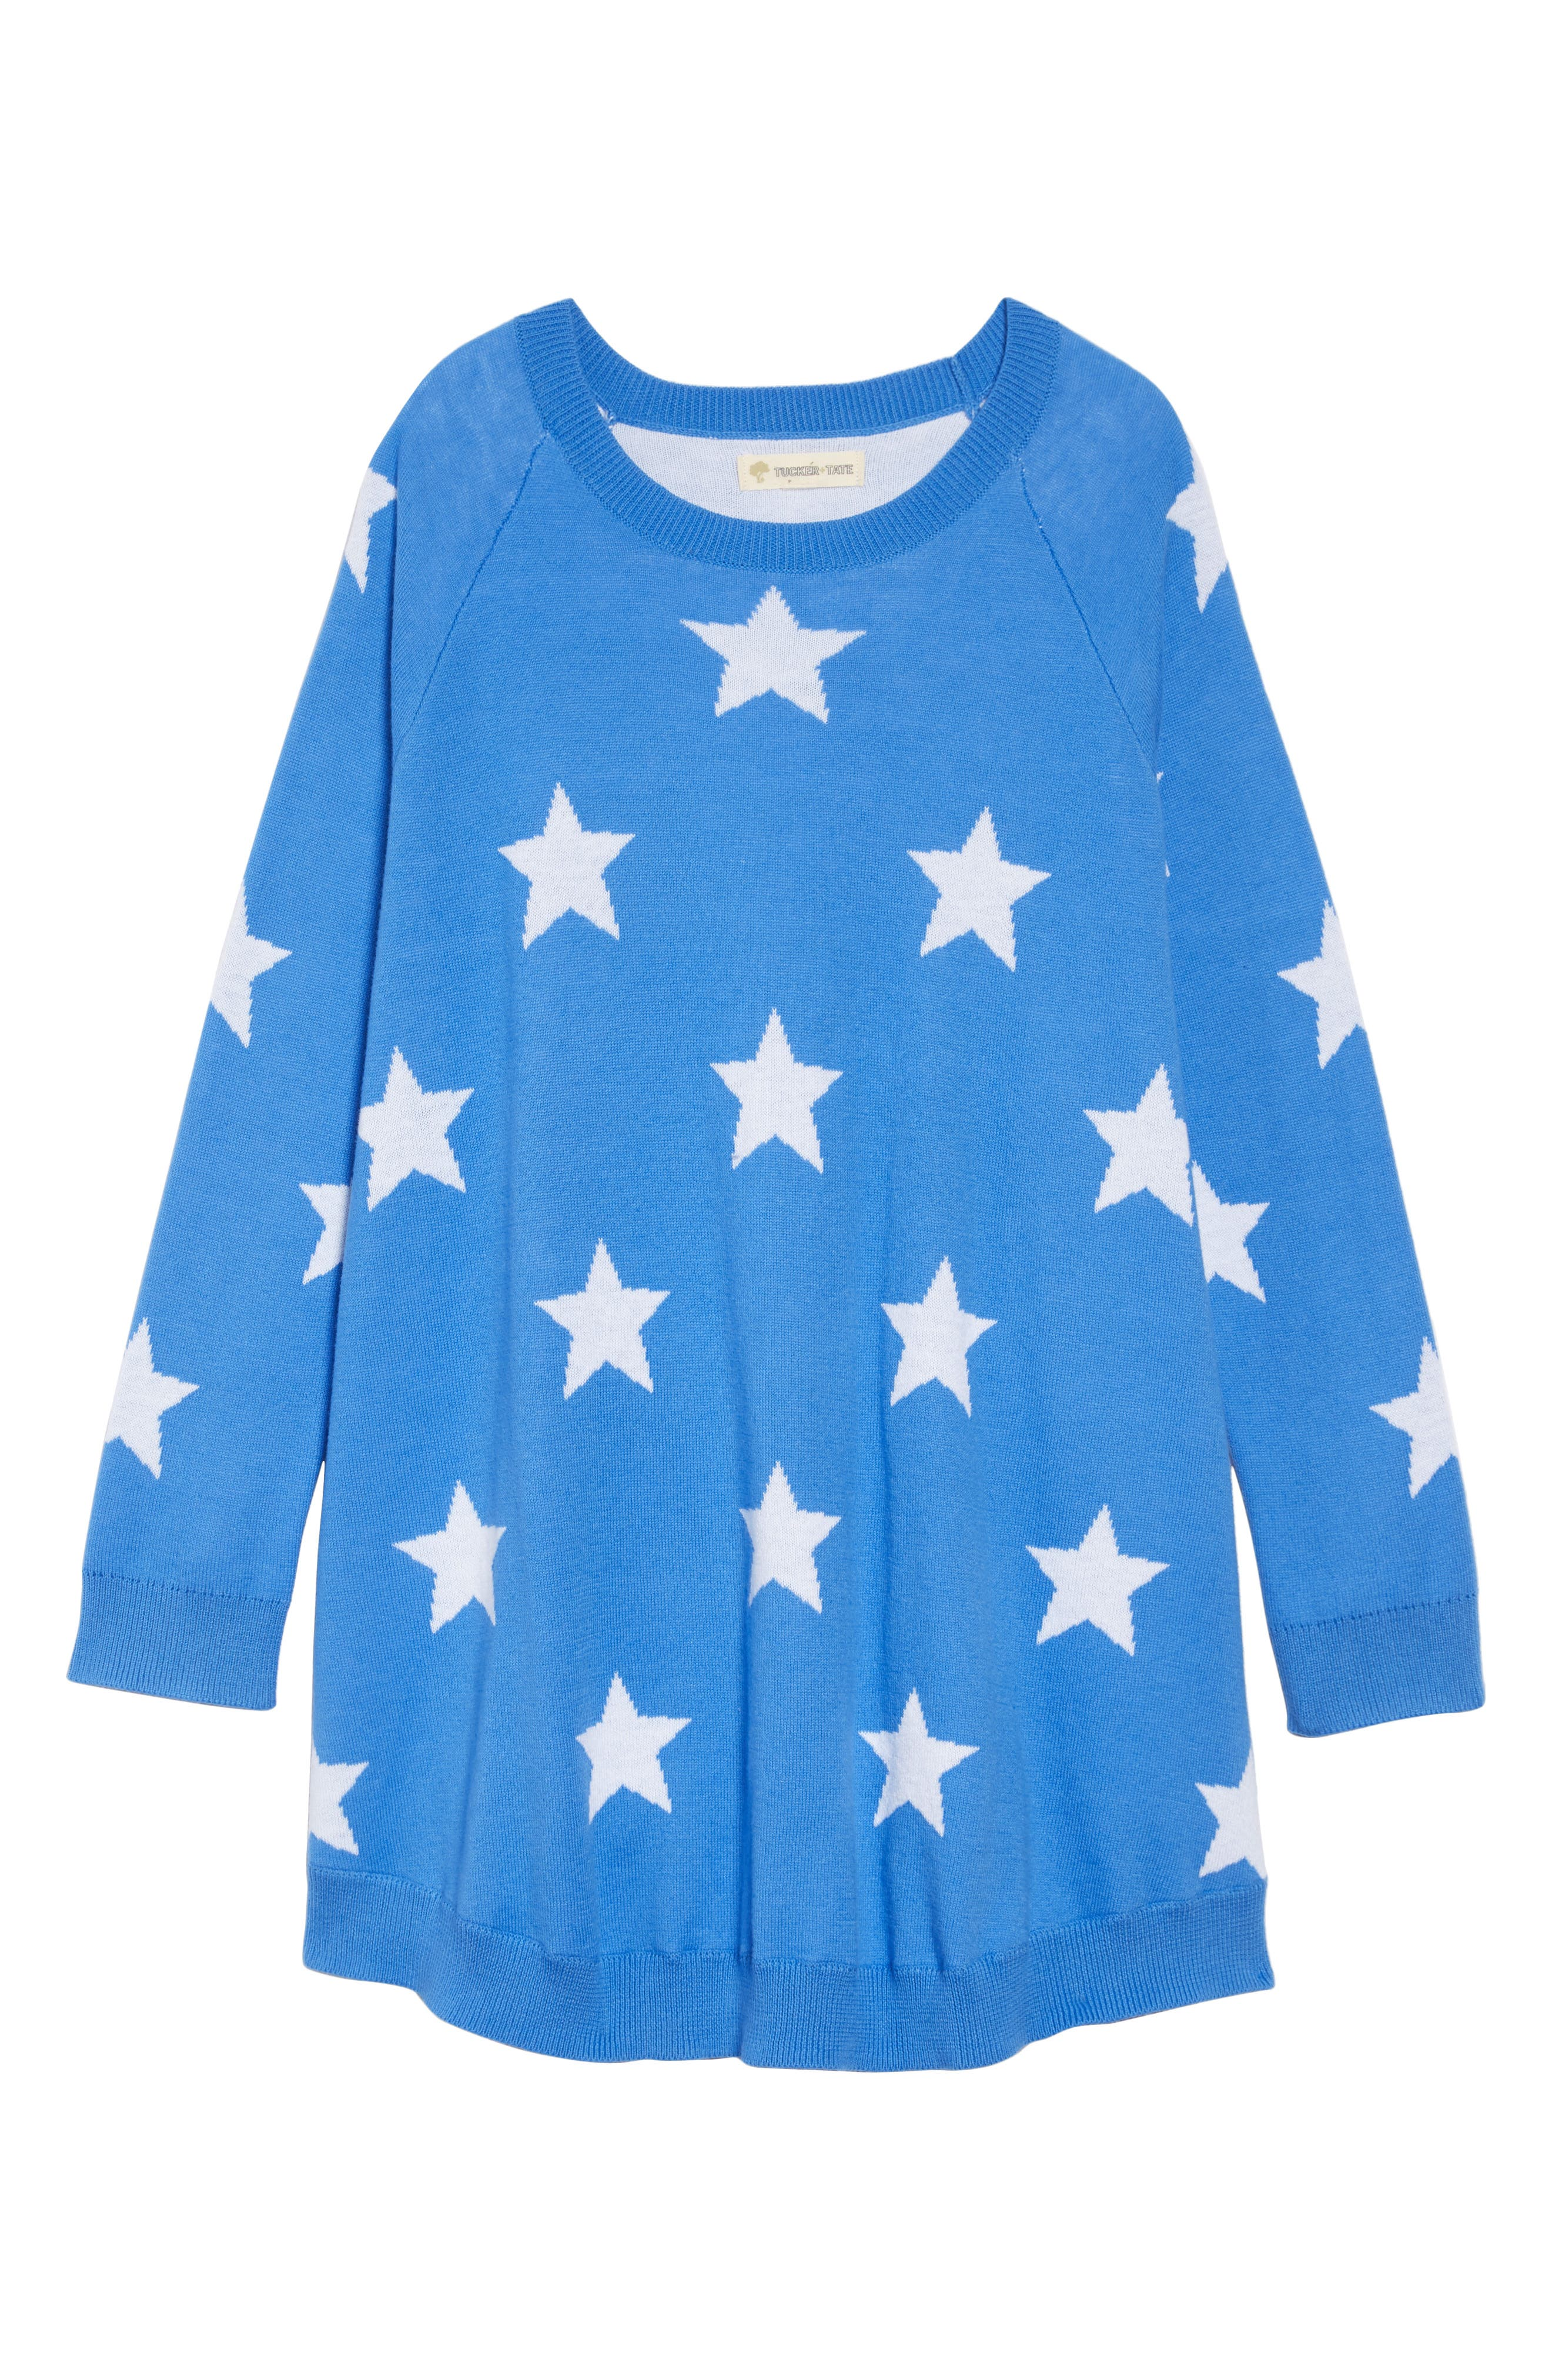 Swingy Sweater Dress,                             Main thumbnail 1, color,                             BLUE CAMP STARS